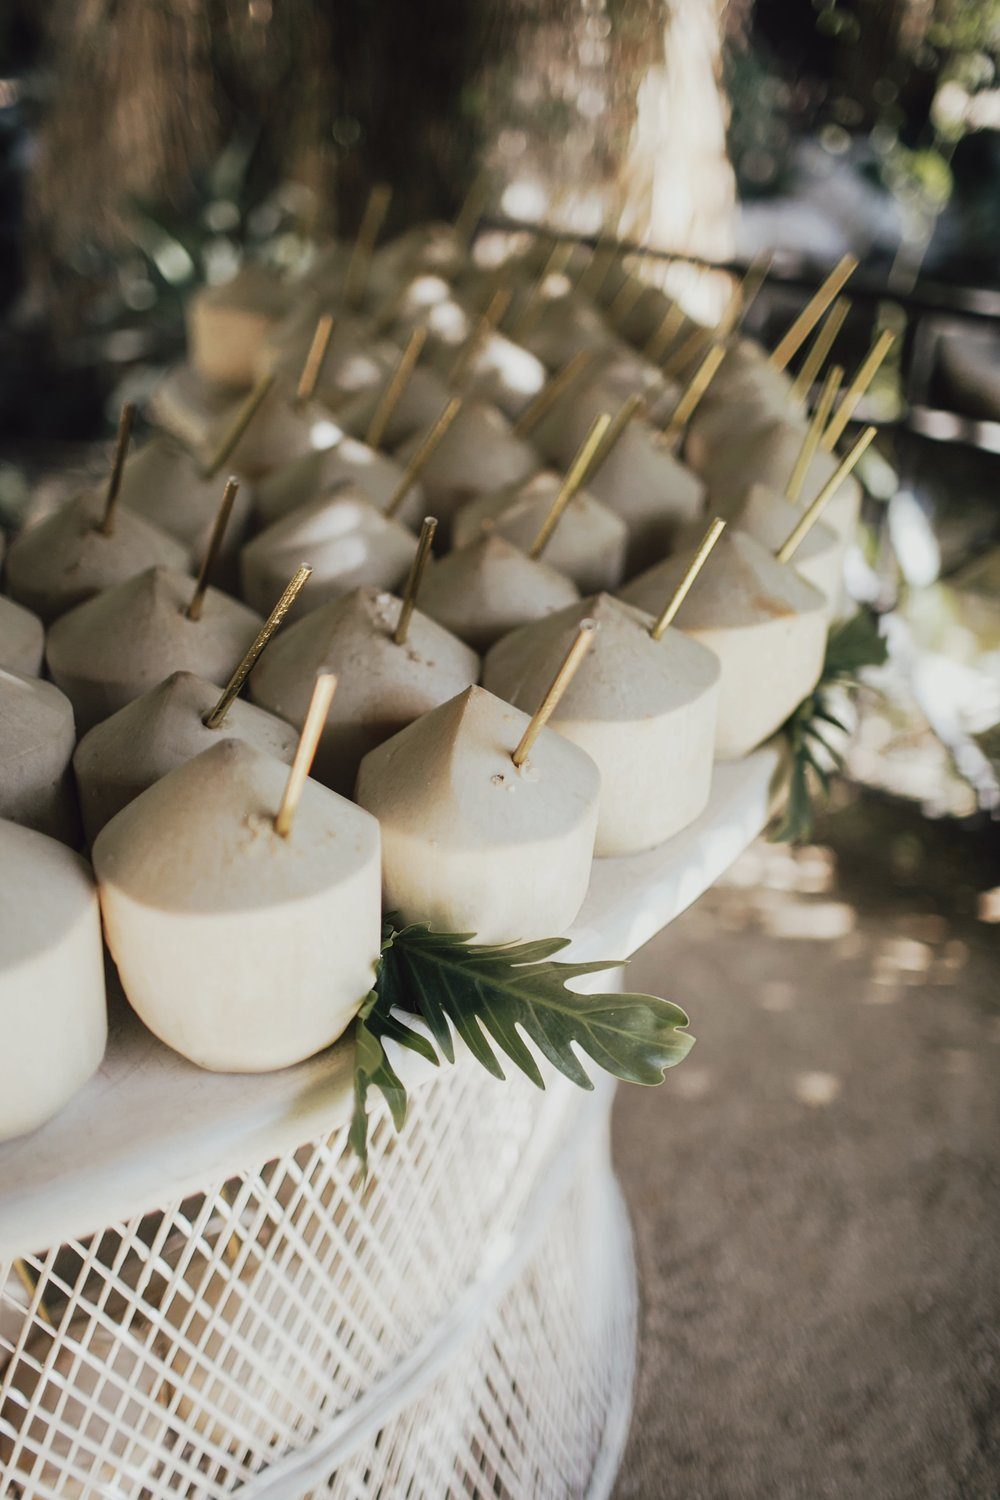 coconut refreshments for guests at the ceremony